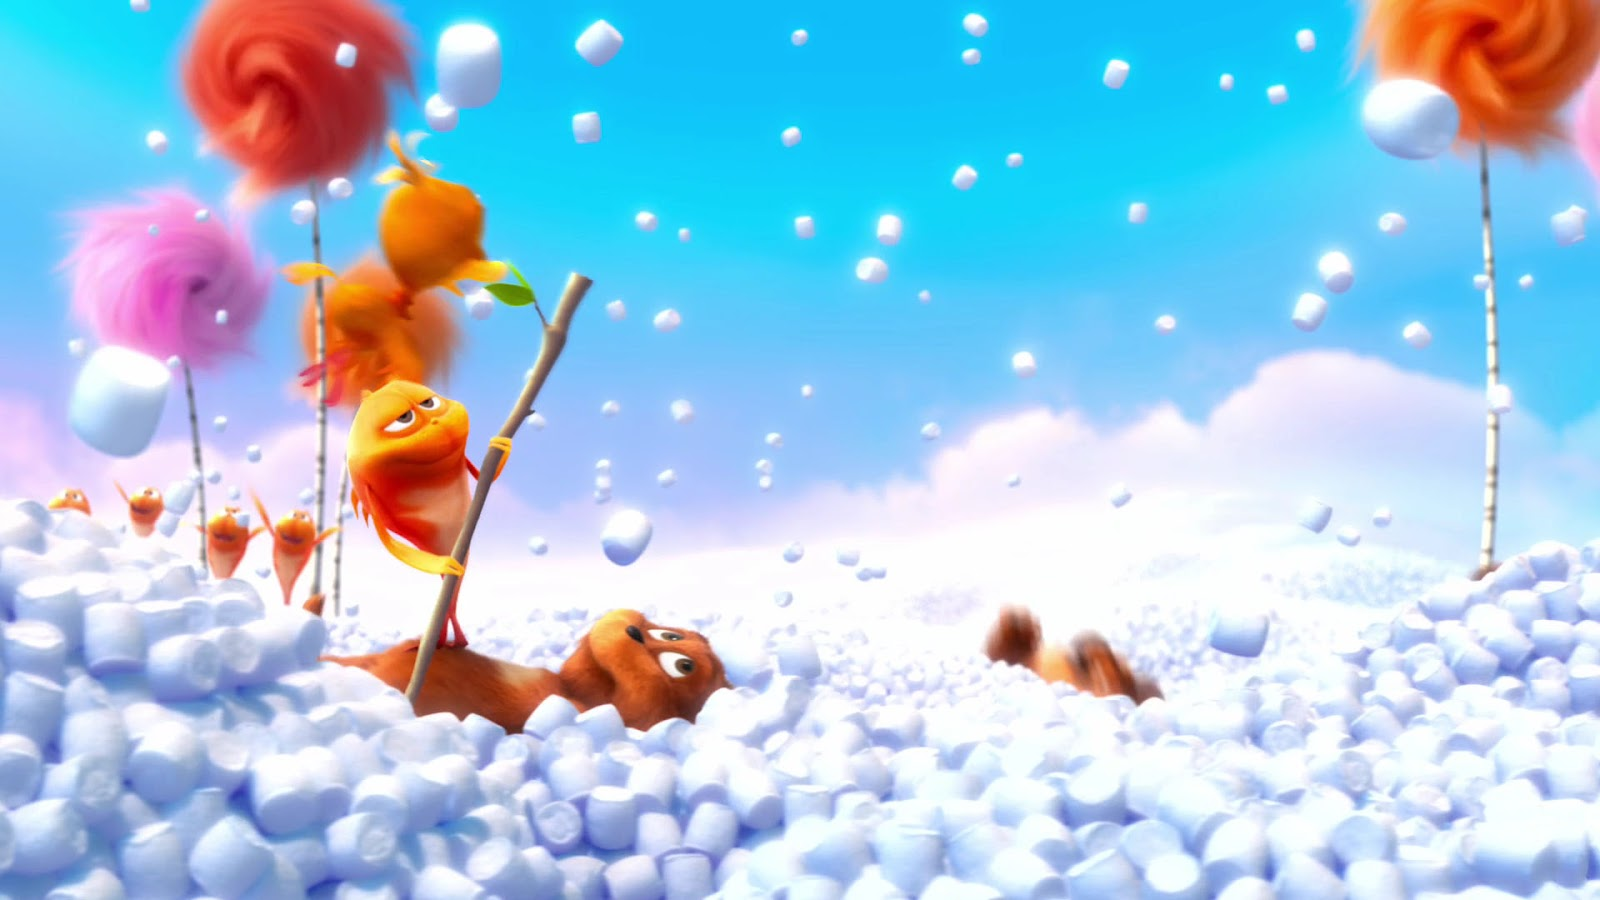 Cartoon wallpaper - Dr. Seuss The Lorax Movie Wallpaper 4 ...